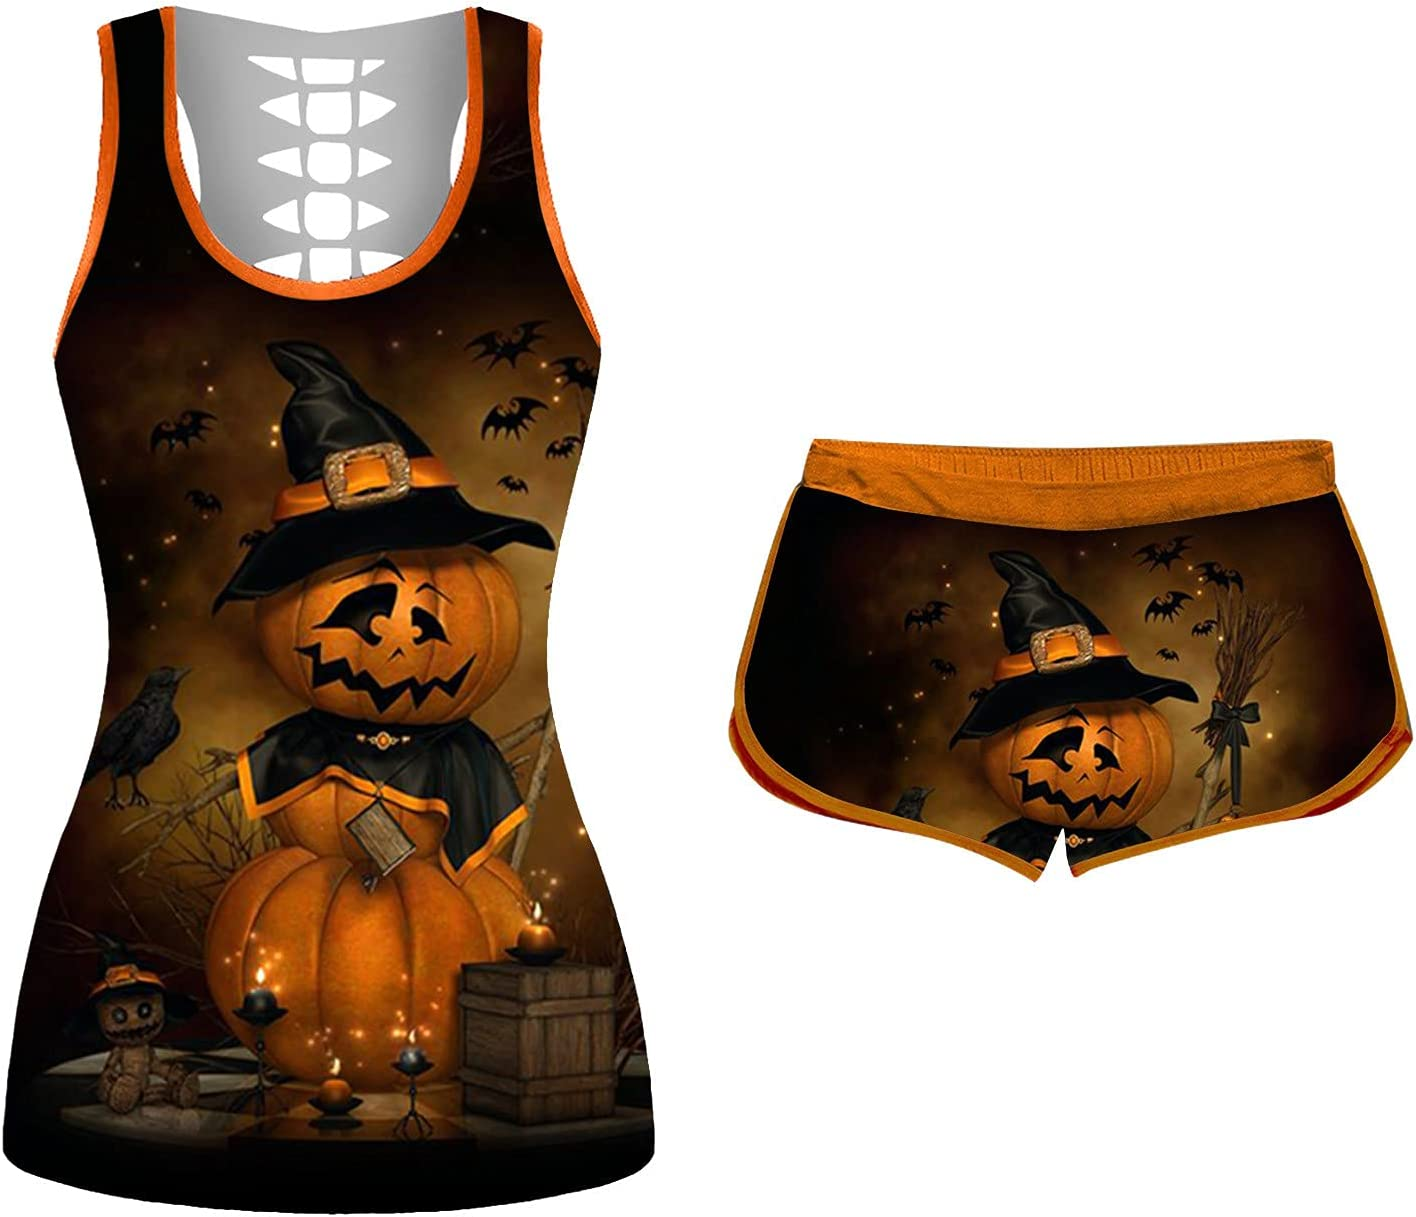 Smileyth High material Women's 2 Piece Outfits Costumes Pumpkin sold out Halloween Prin